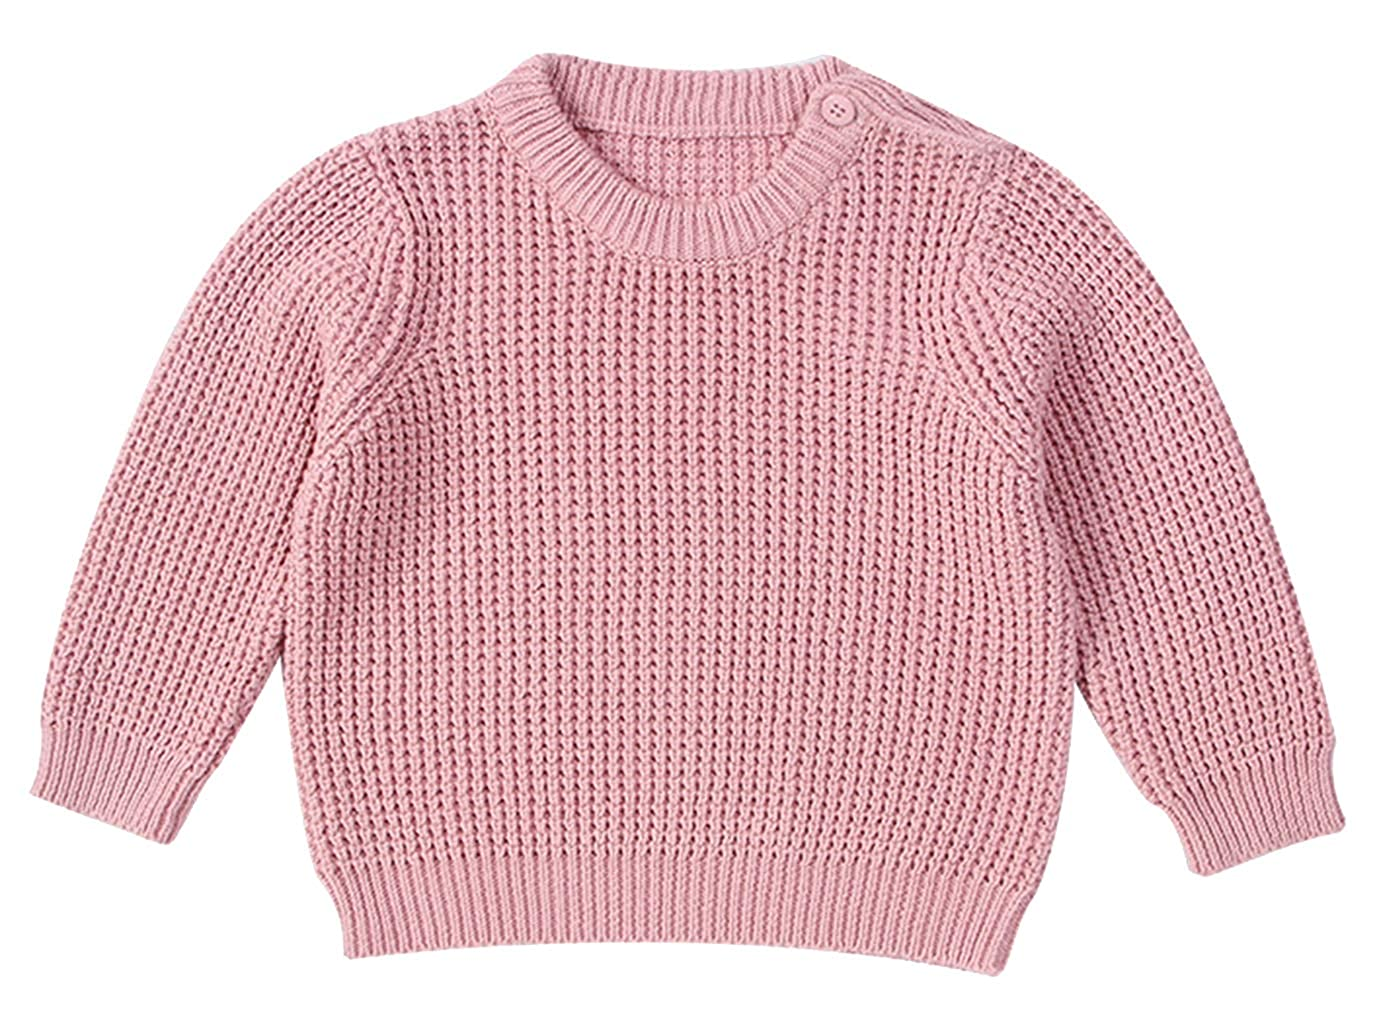 La Vogue Unisex Toddlers Hand-Knitted Long Sleeve Pullover Knitwear Autumn Winter Solid Knitted Jumper Sweater